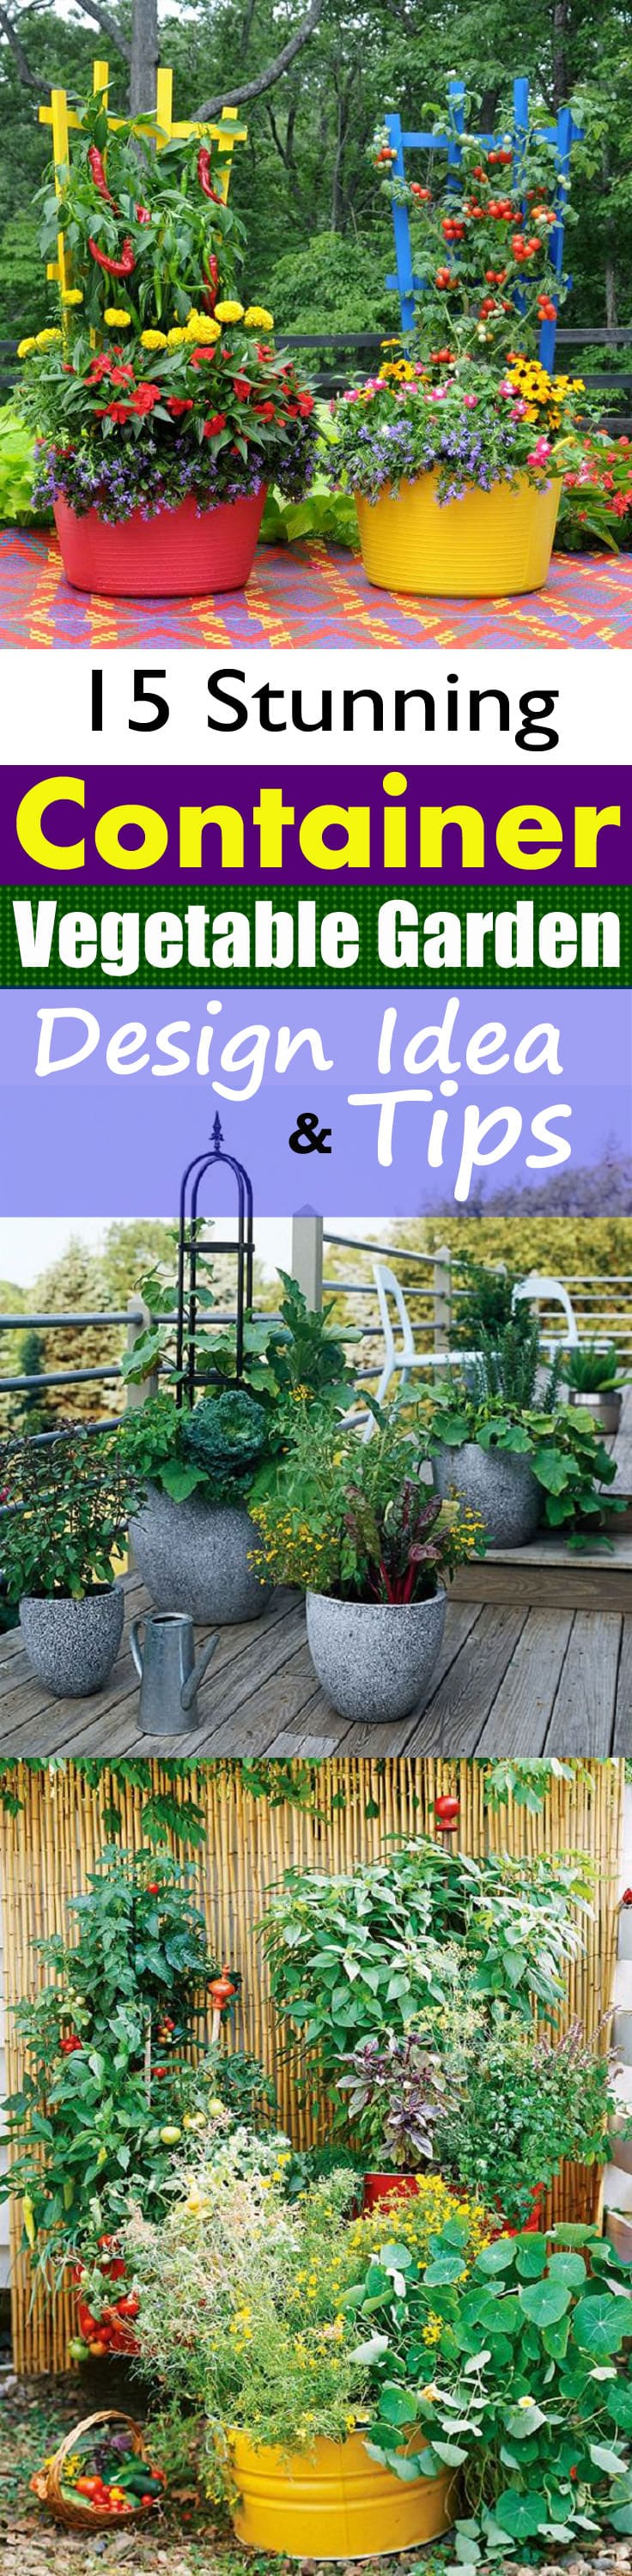 Container Vegetable Garden Design Ideas